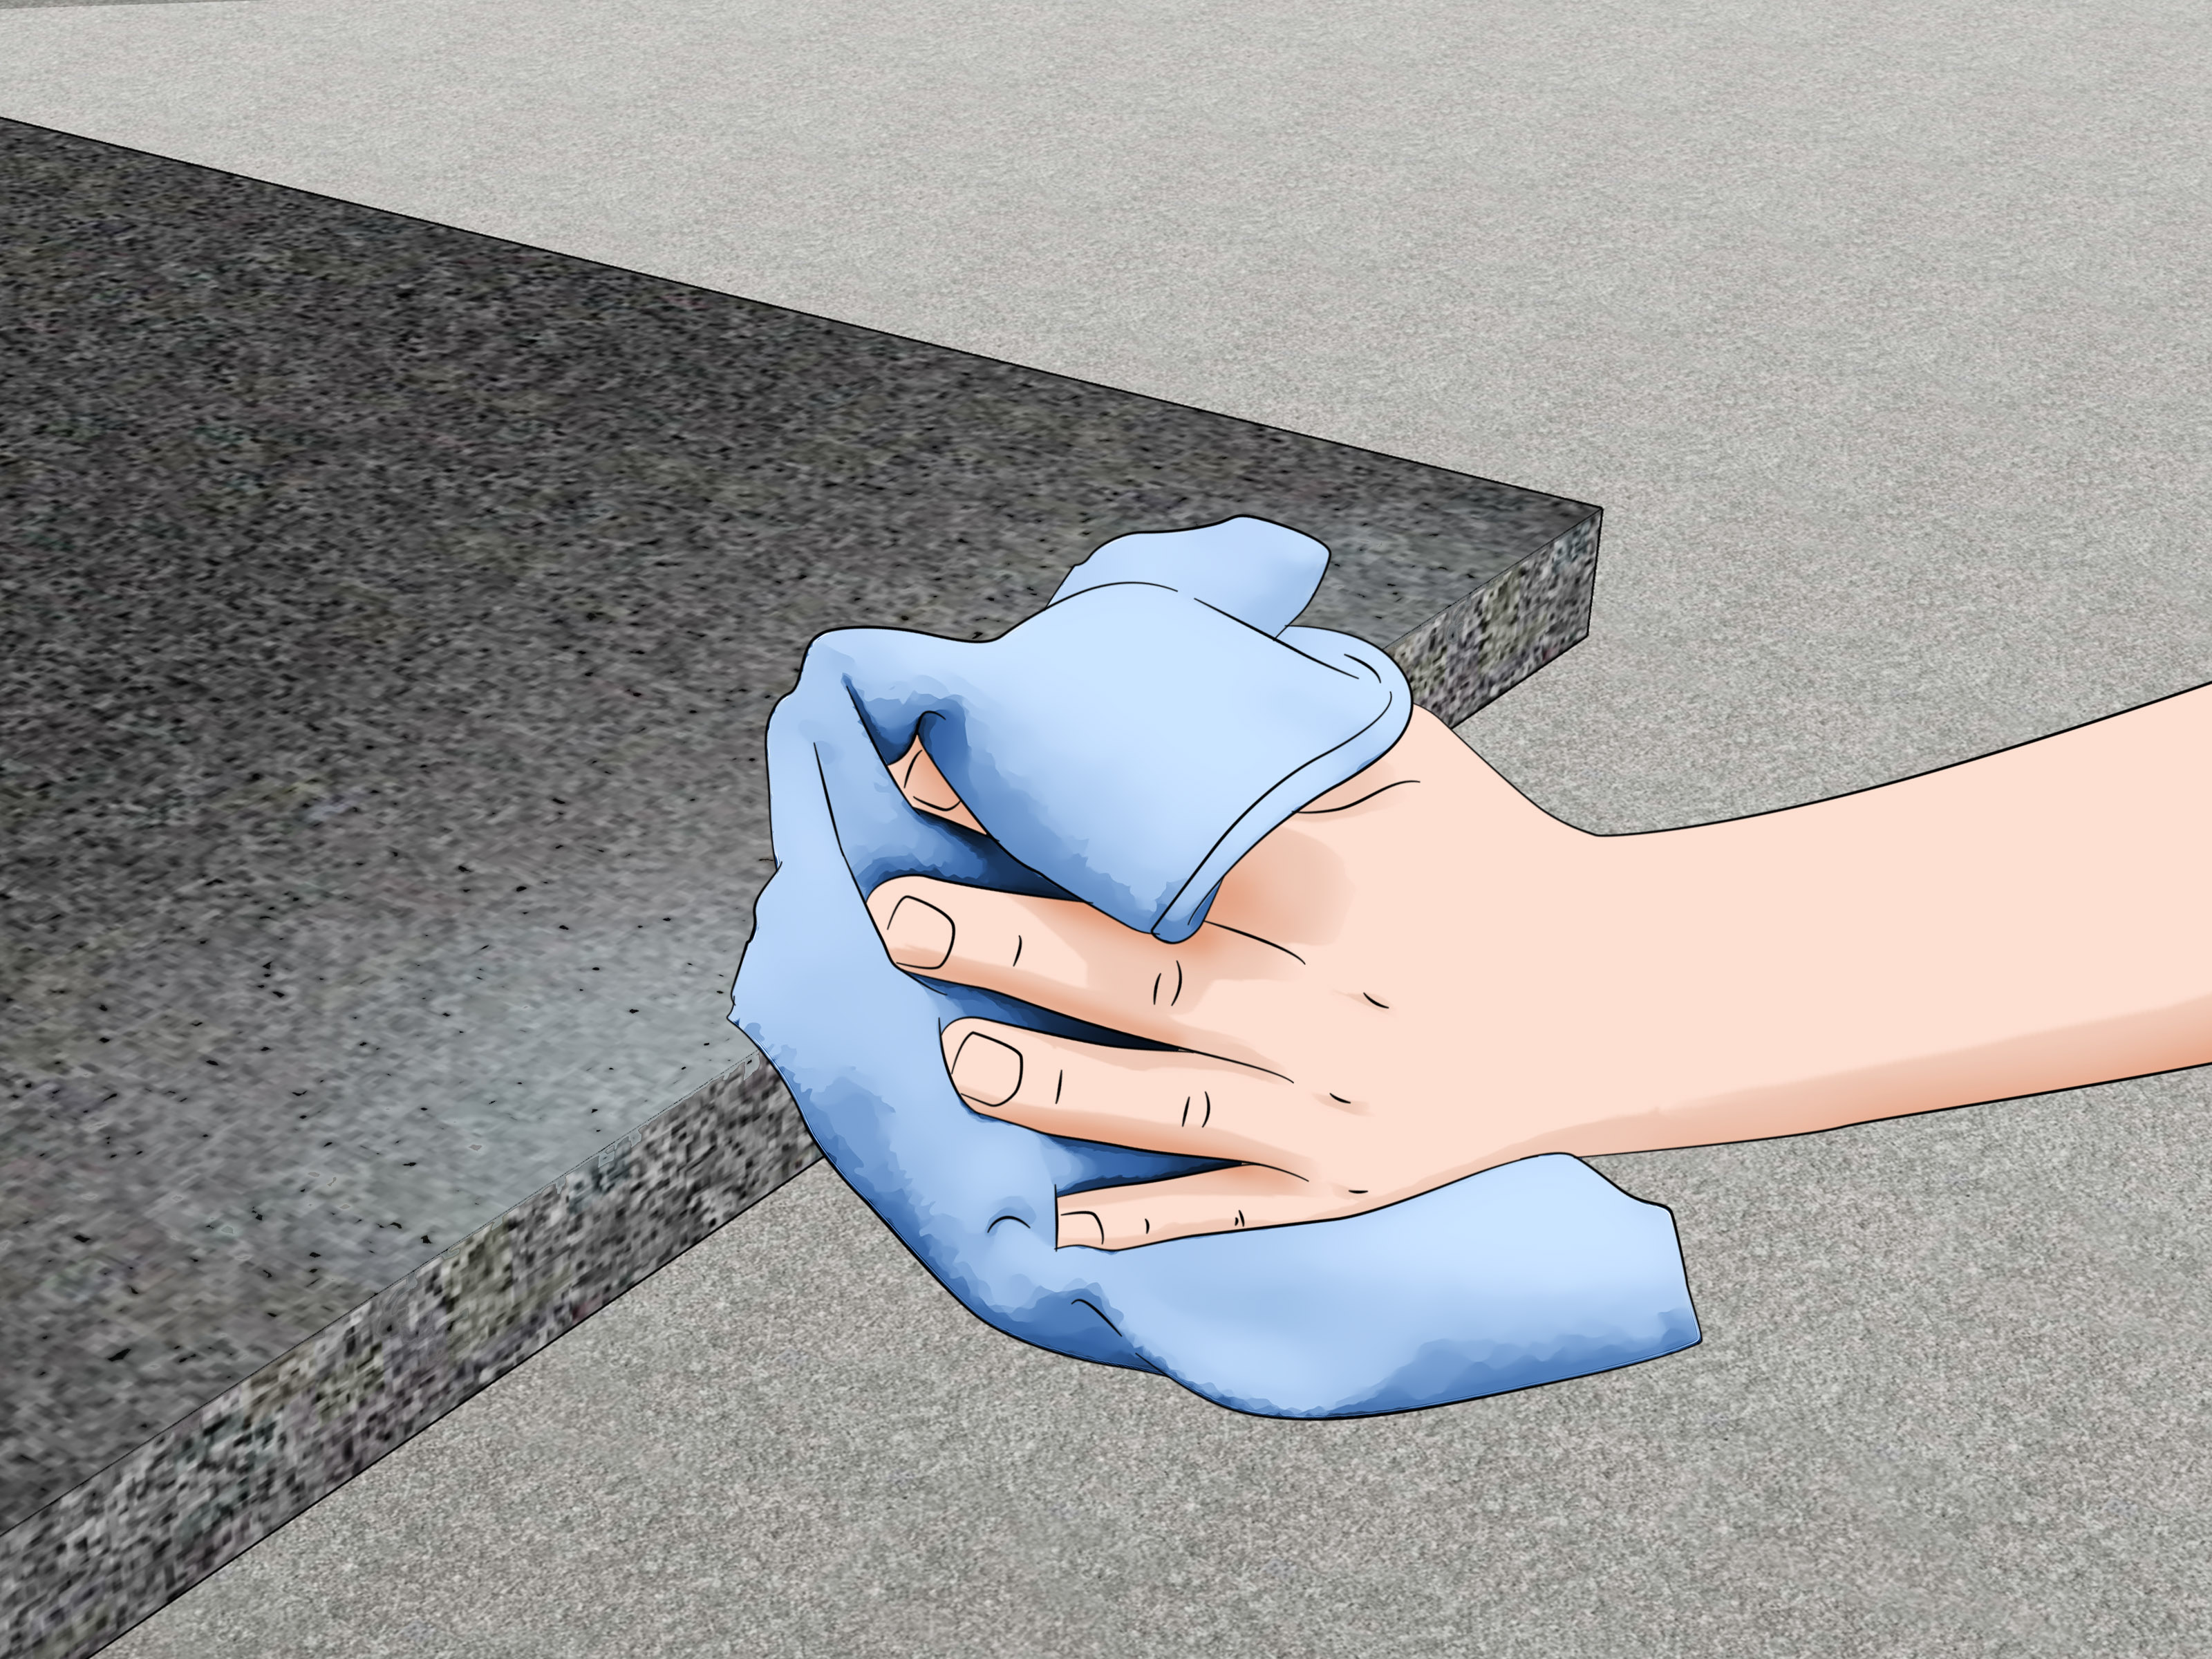 4 Easy Ways To Cut Granite Countertops Wikihow